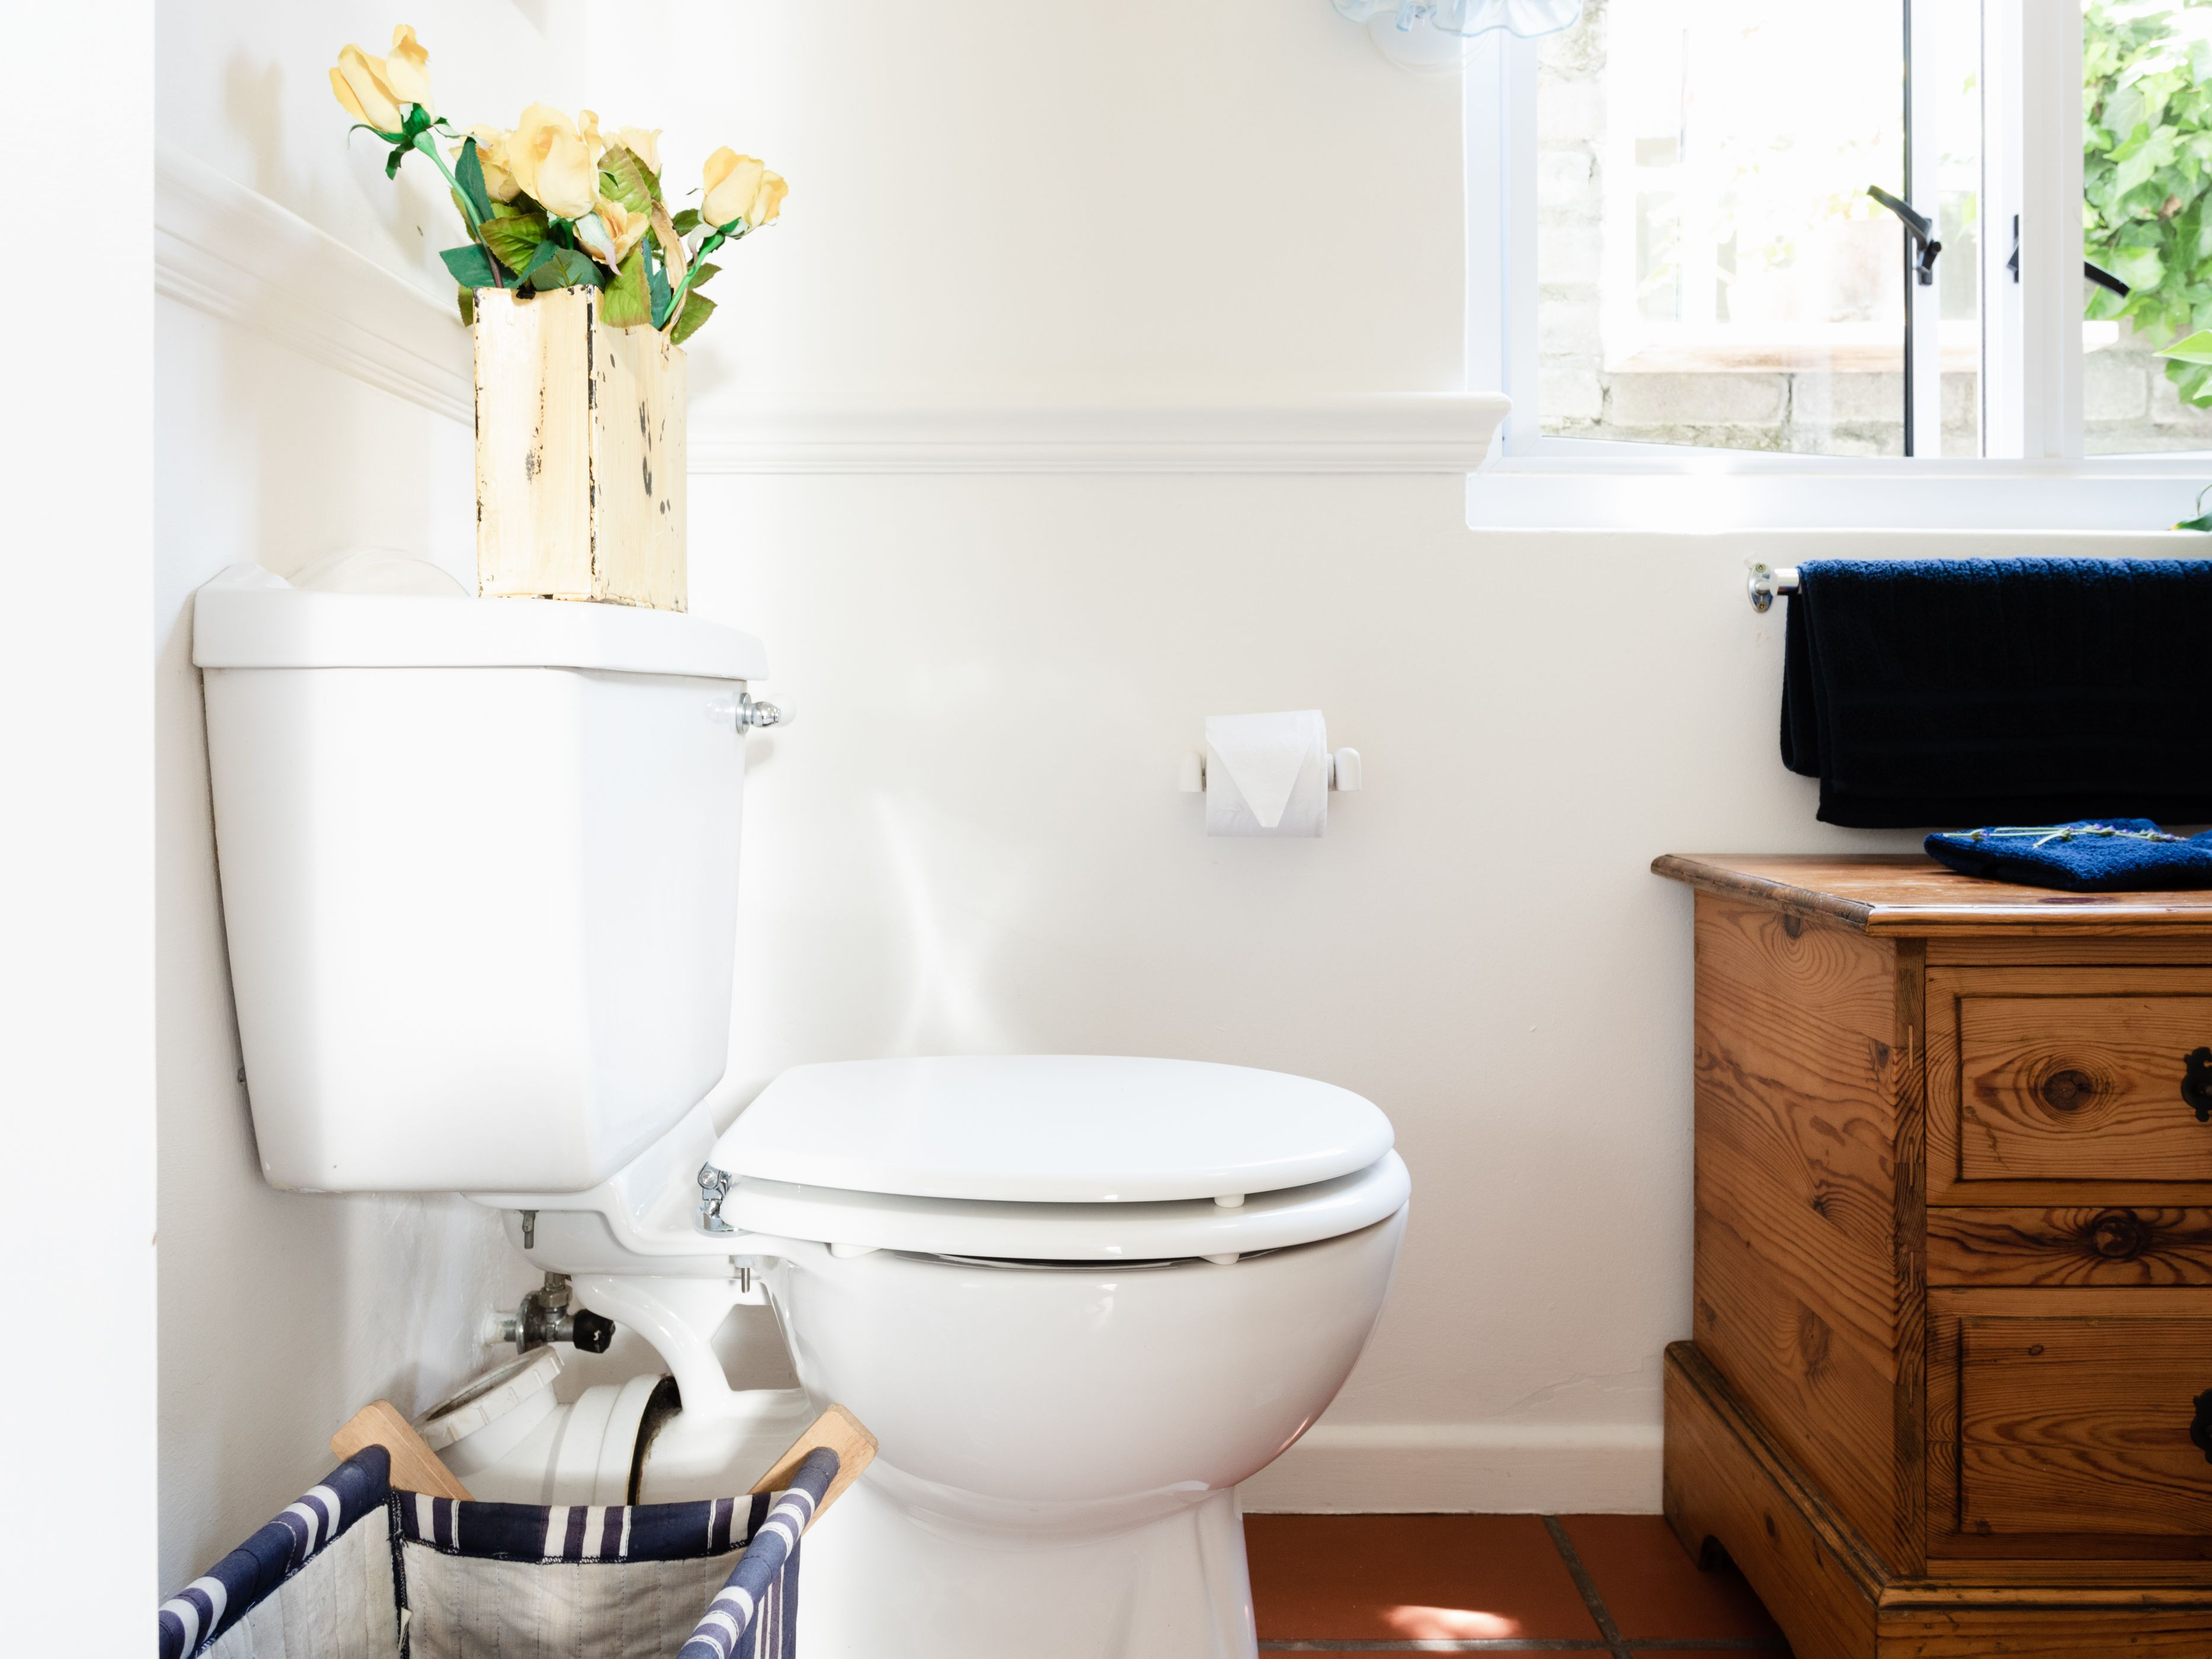 Common Toilet Problems You Can Fix Yourself